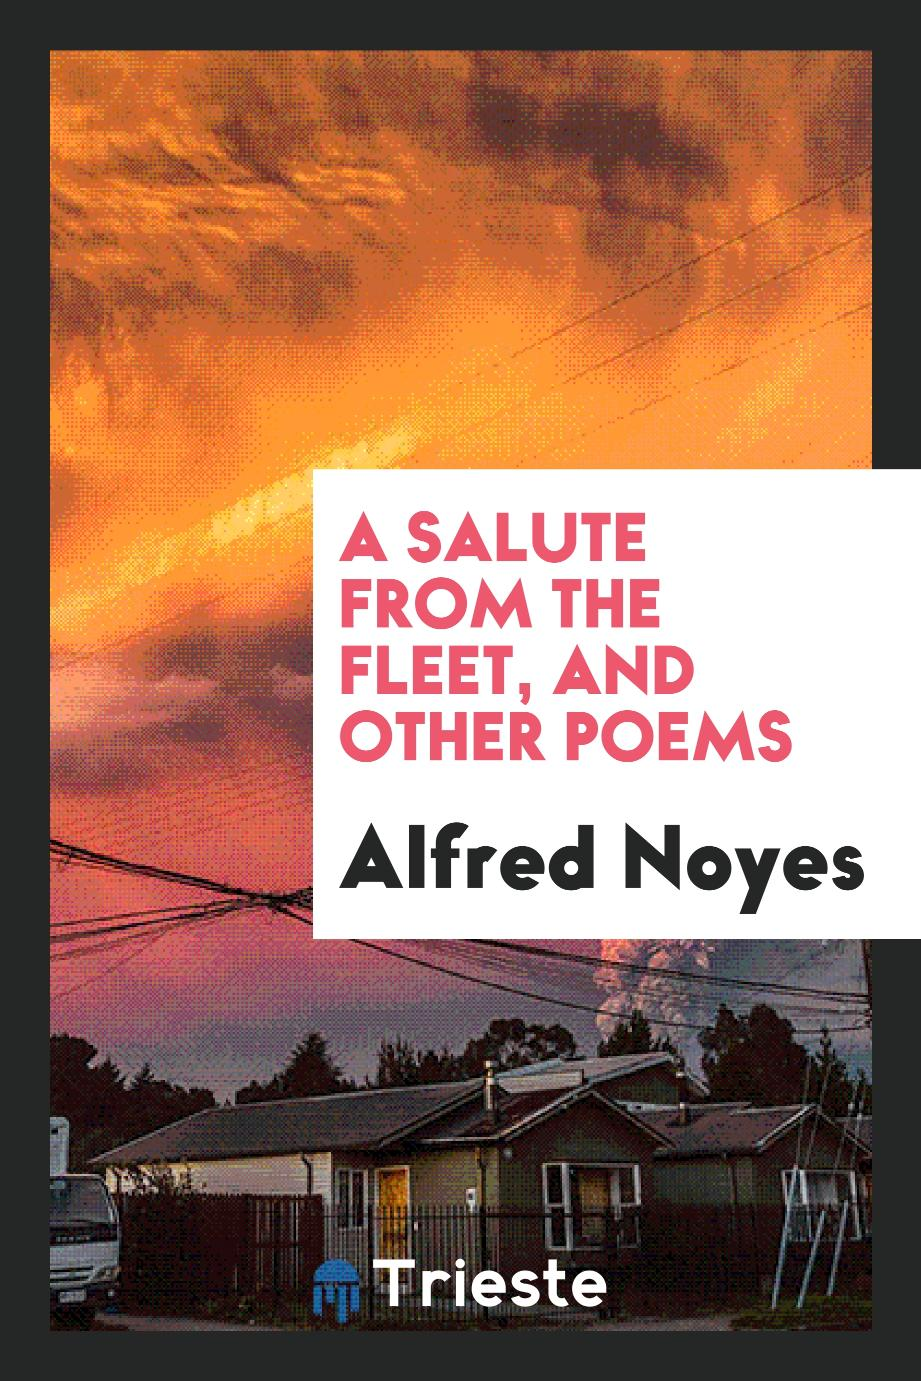 A salute from the fleet, and other poems